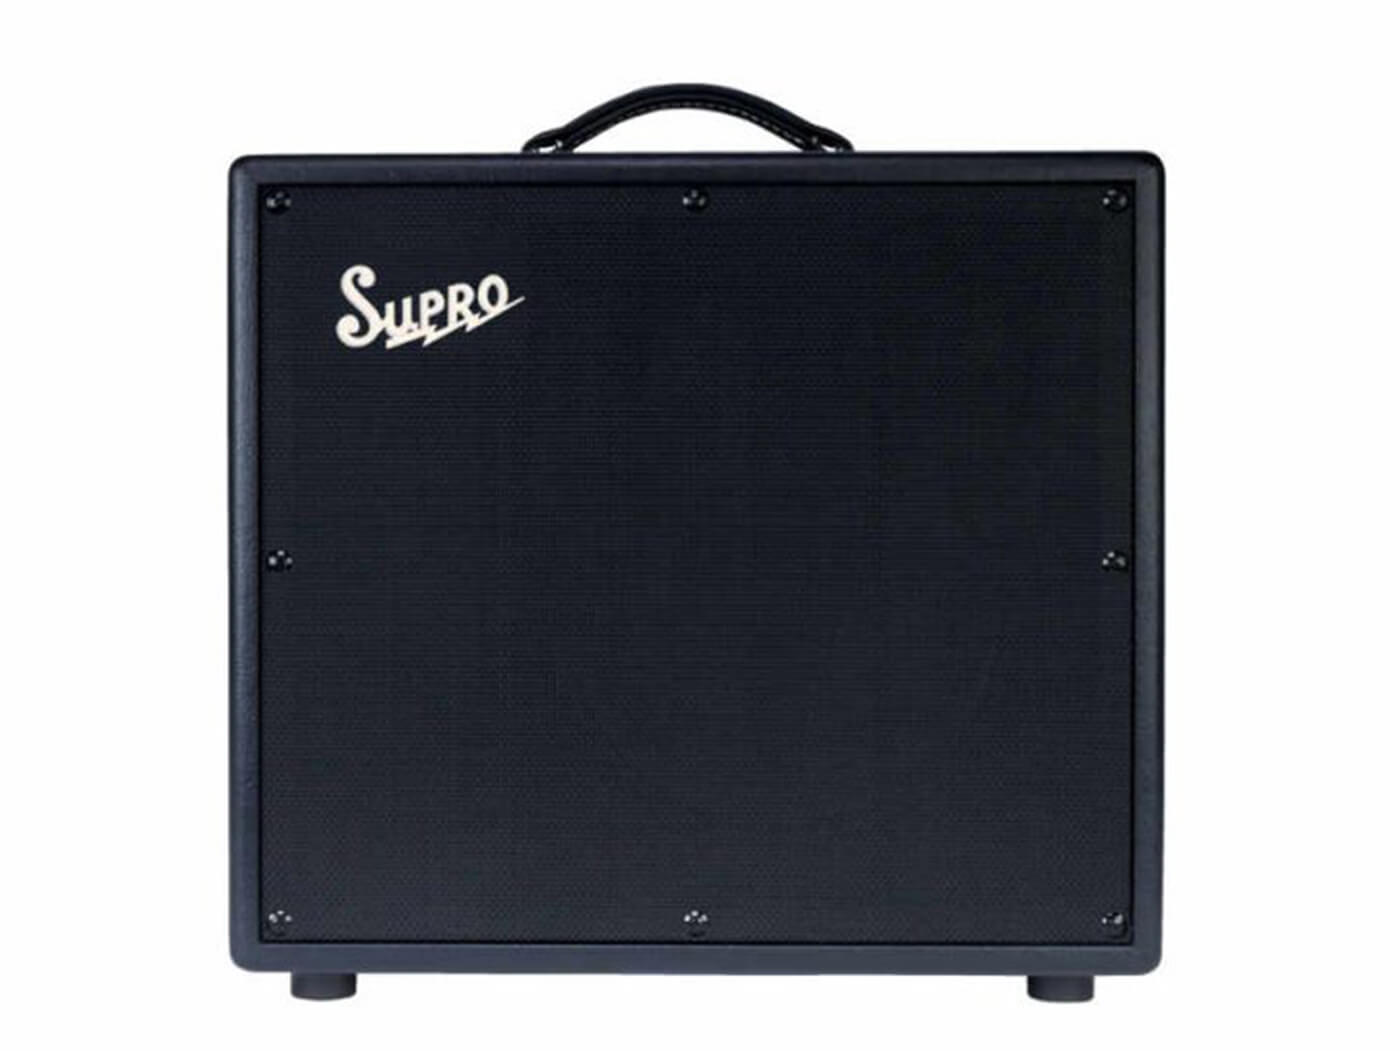 Supro Galaxy 1x12 cab front